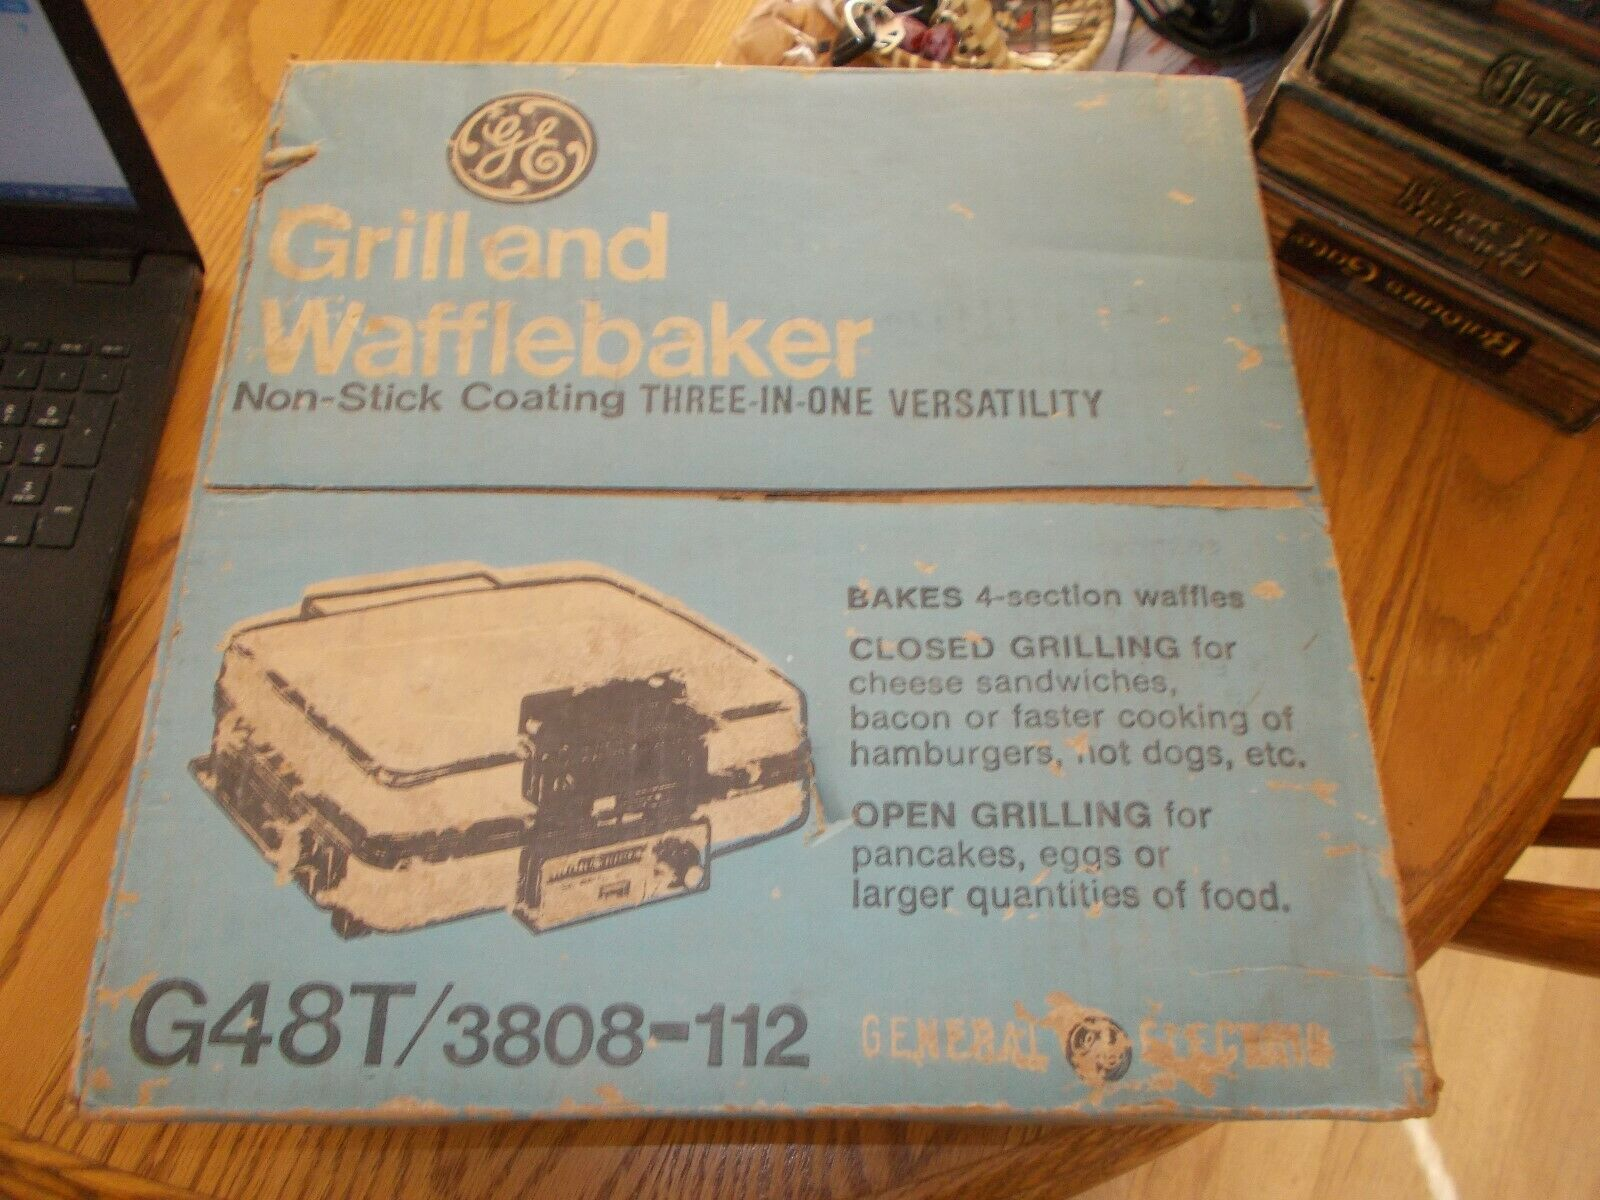 GENERAL ELECTRIC GRILL AND WAFFLEBAKER BRAND nouveau IN BOX